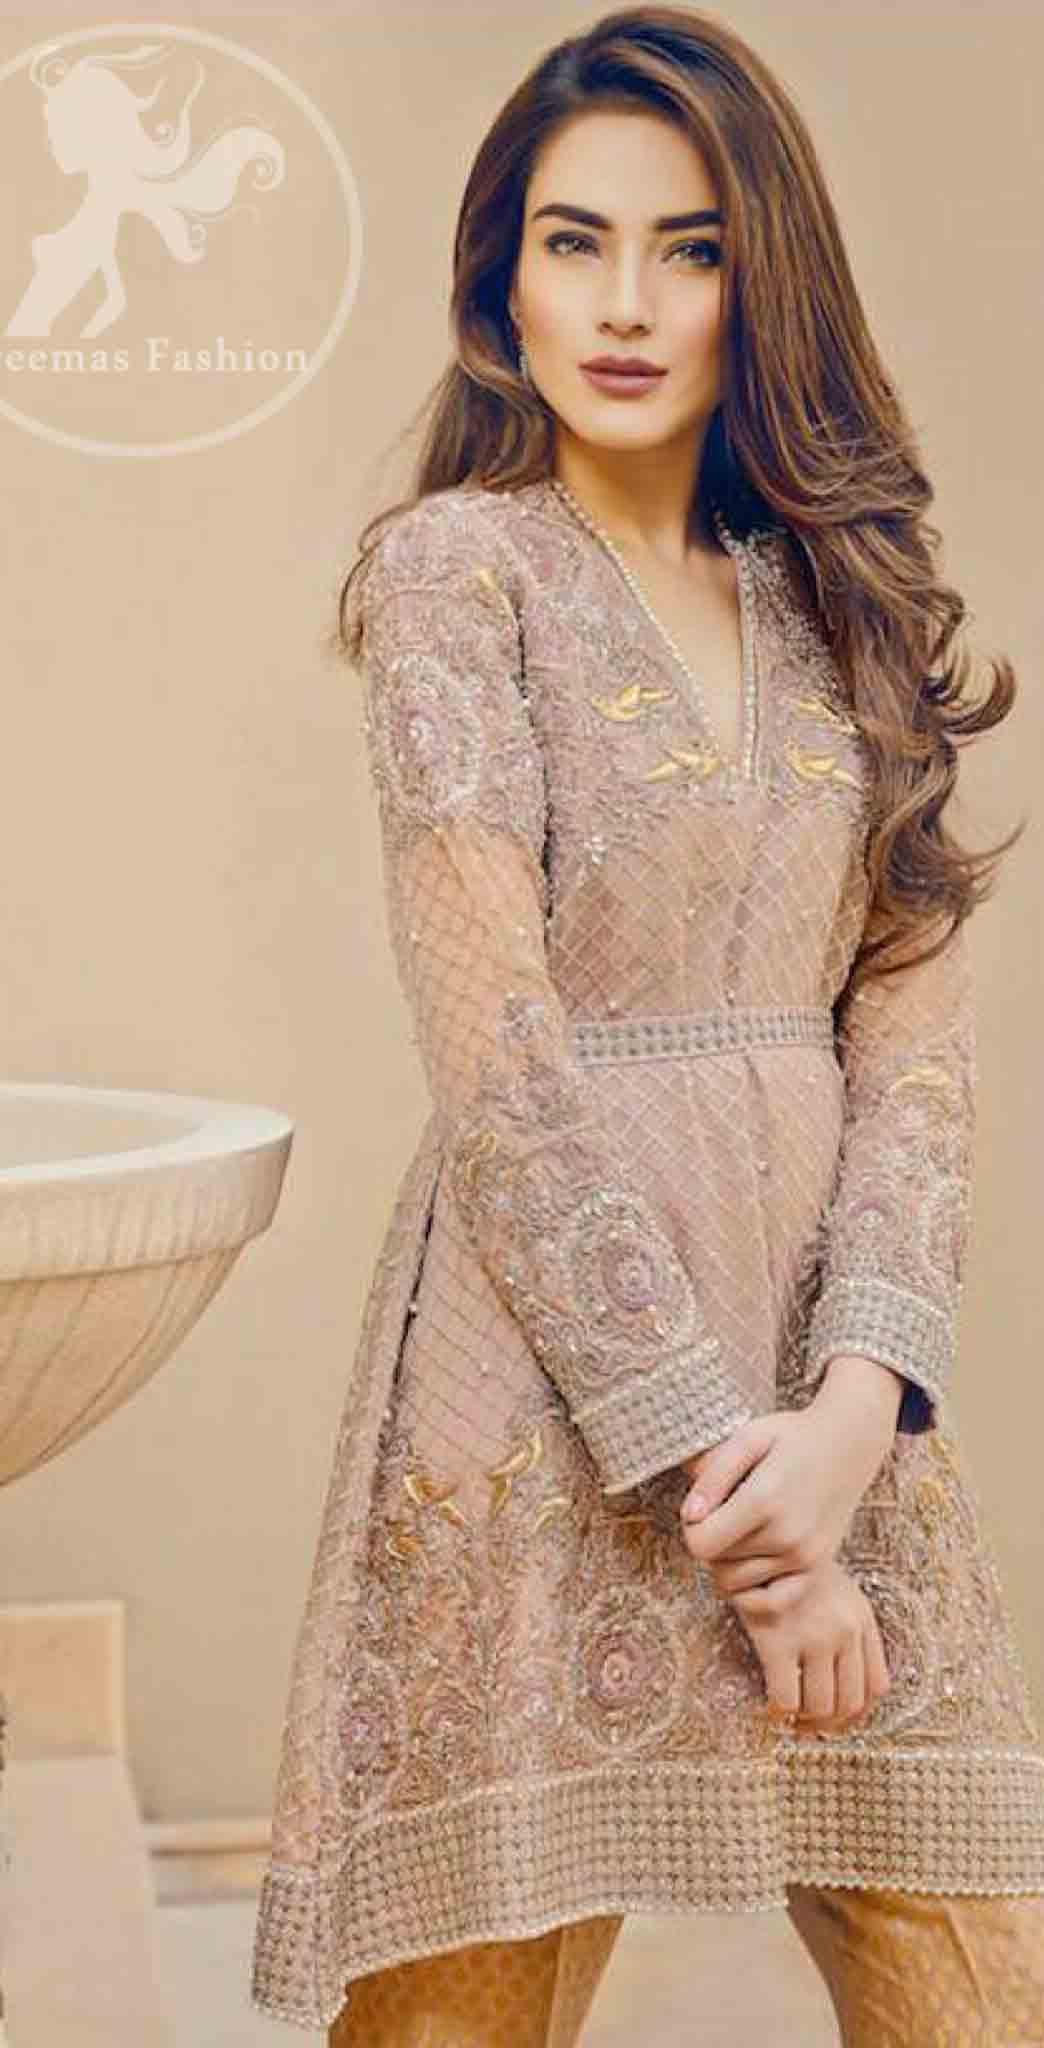 Latest knee length shirt fashion trend for Eid